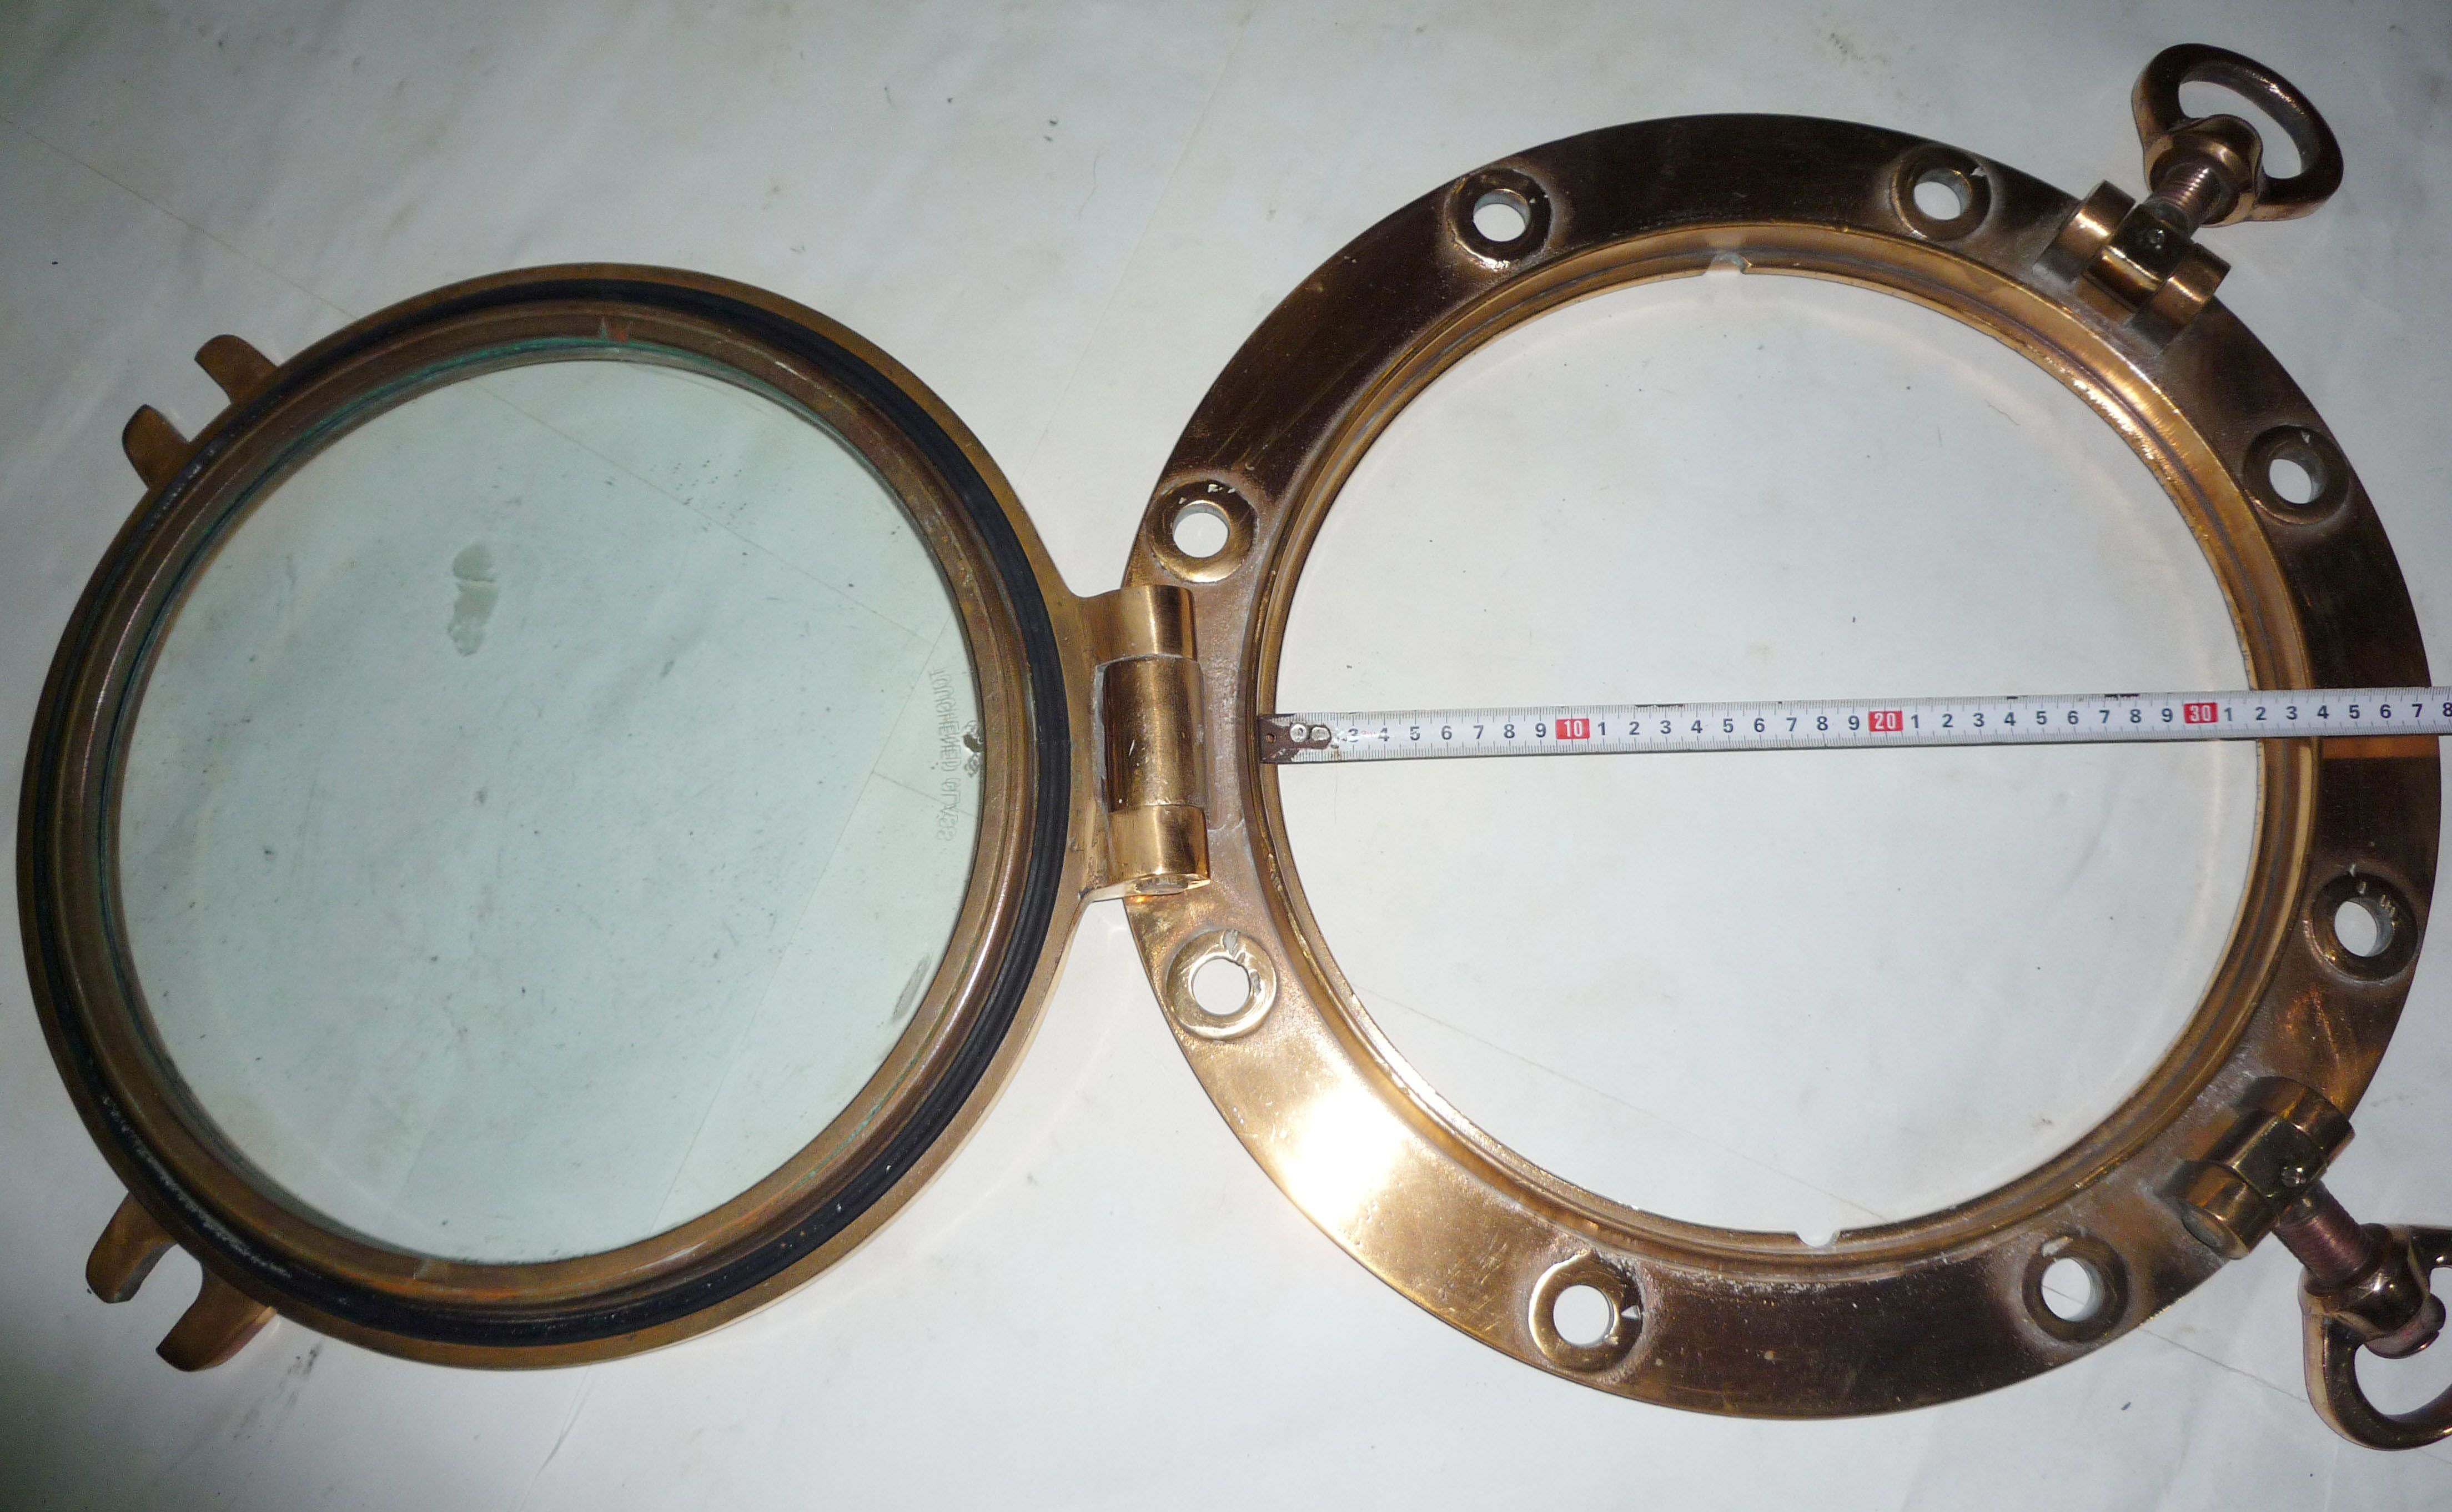 Brass portholes-I would love 2 have one of these!